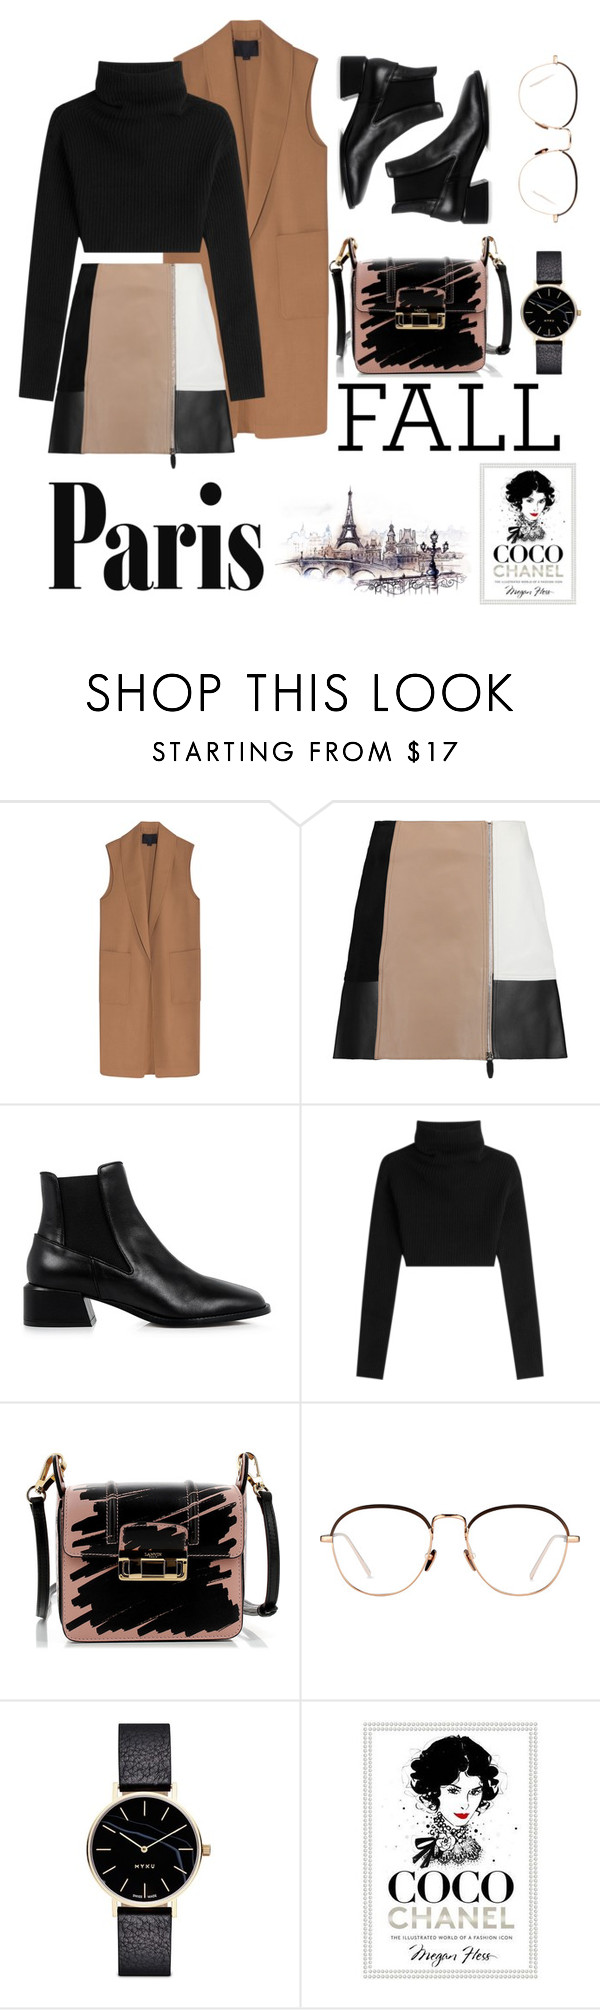 """AUTUMN IN PARIS"" by peace96-1 ❤ liked on Polyvore featuring Alexander Wang, TIBI, Valentino, Lanvin, Linda Farrow, Myku and Chanel"